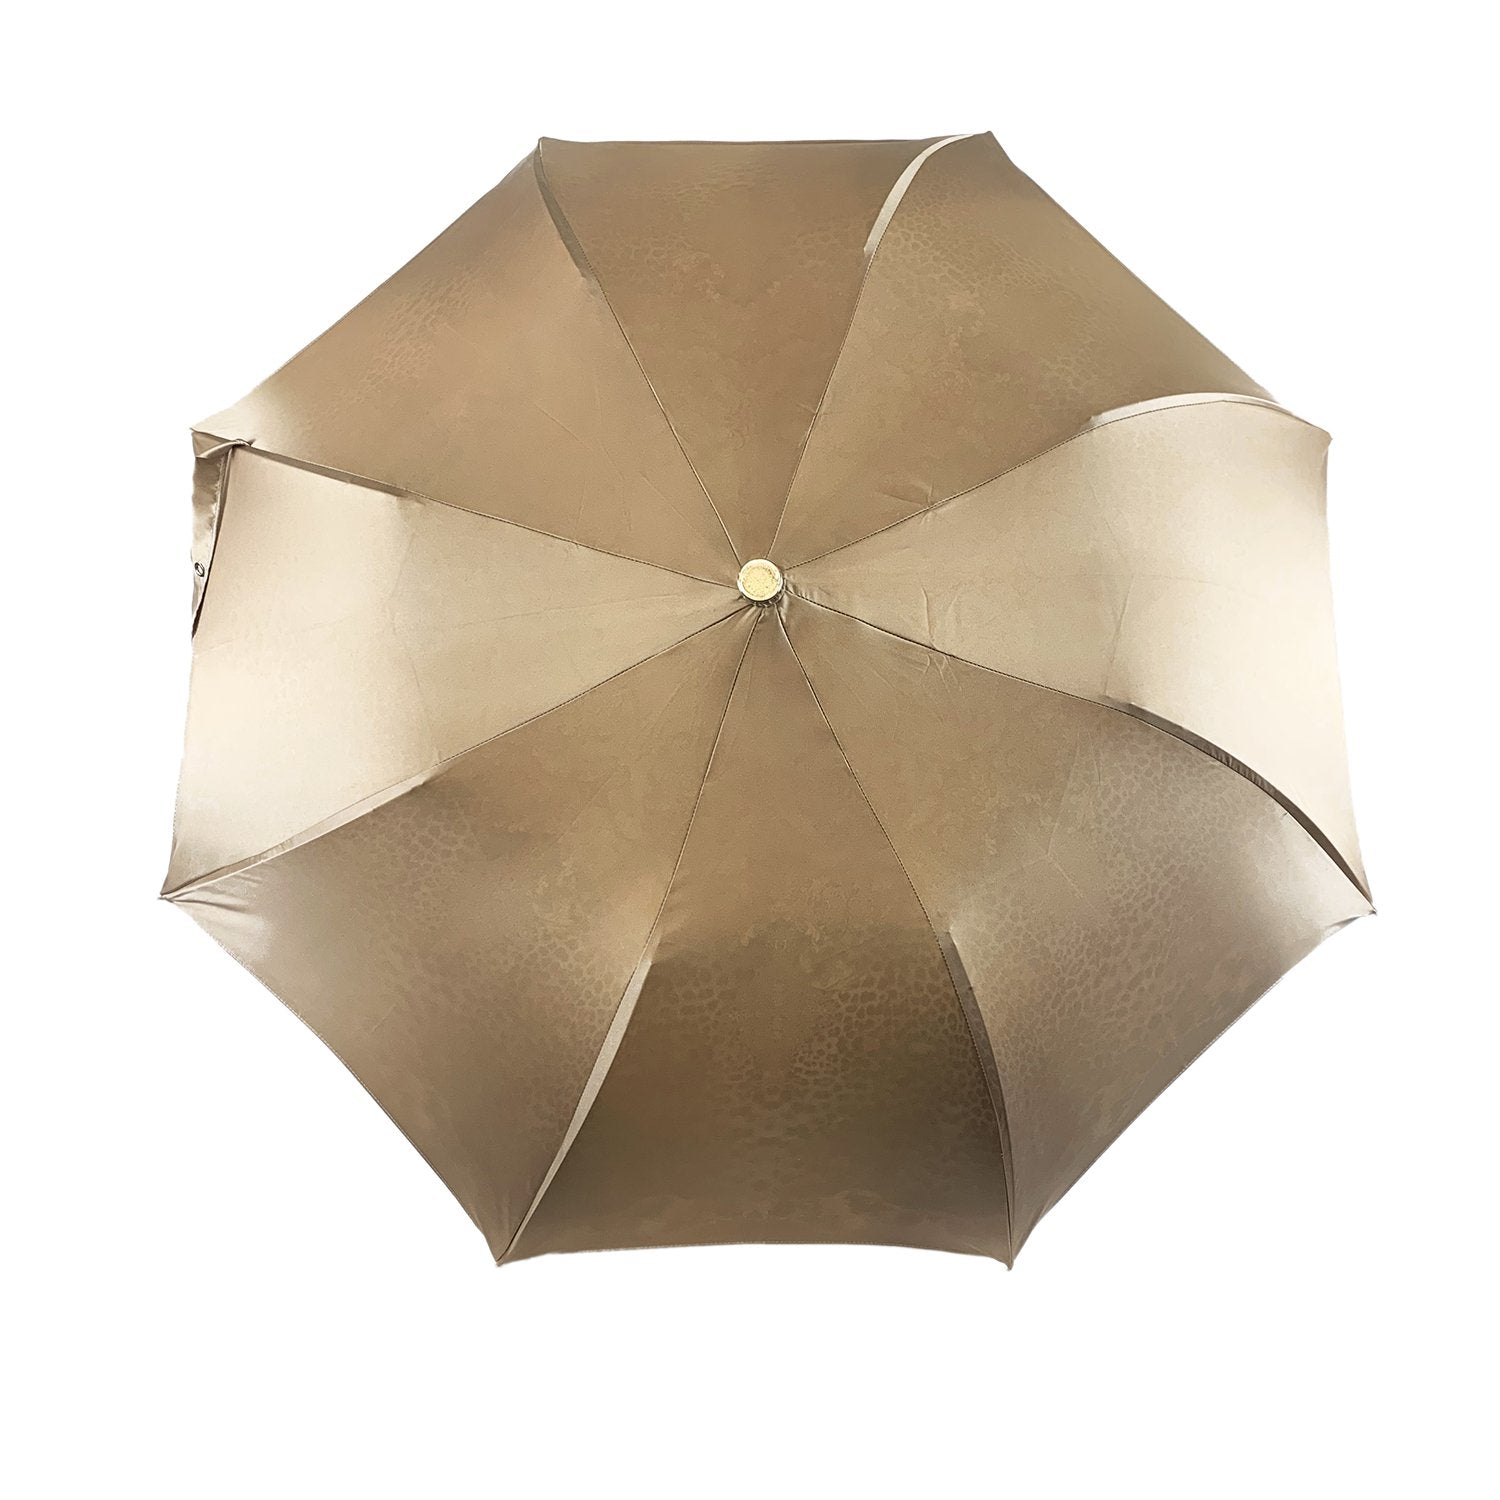 Exclusive 24K Goldplated Dragonfy umbrella - IL MARCHESATO LUXURY UMBRELLAS, CANES AND SHOEHORNS